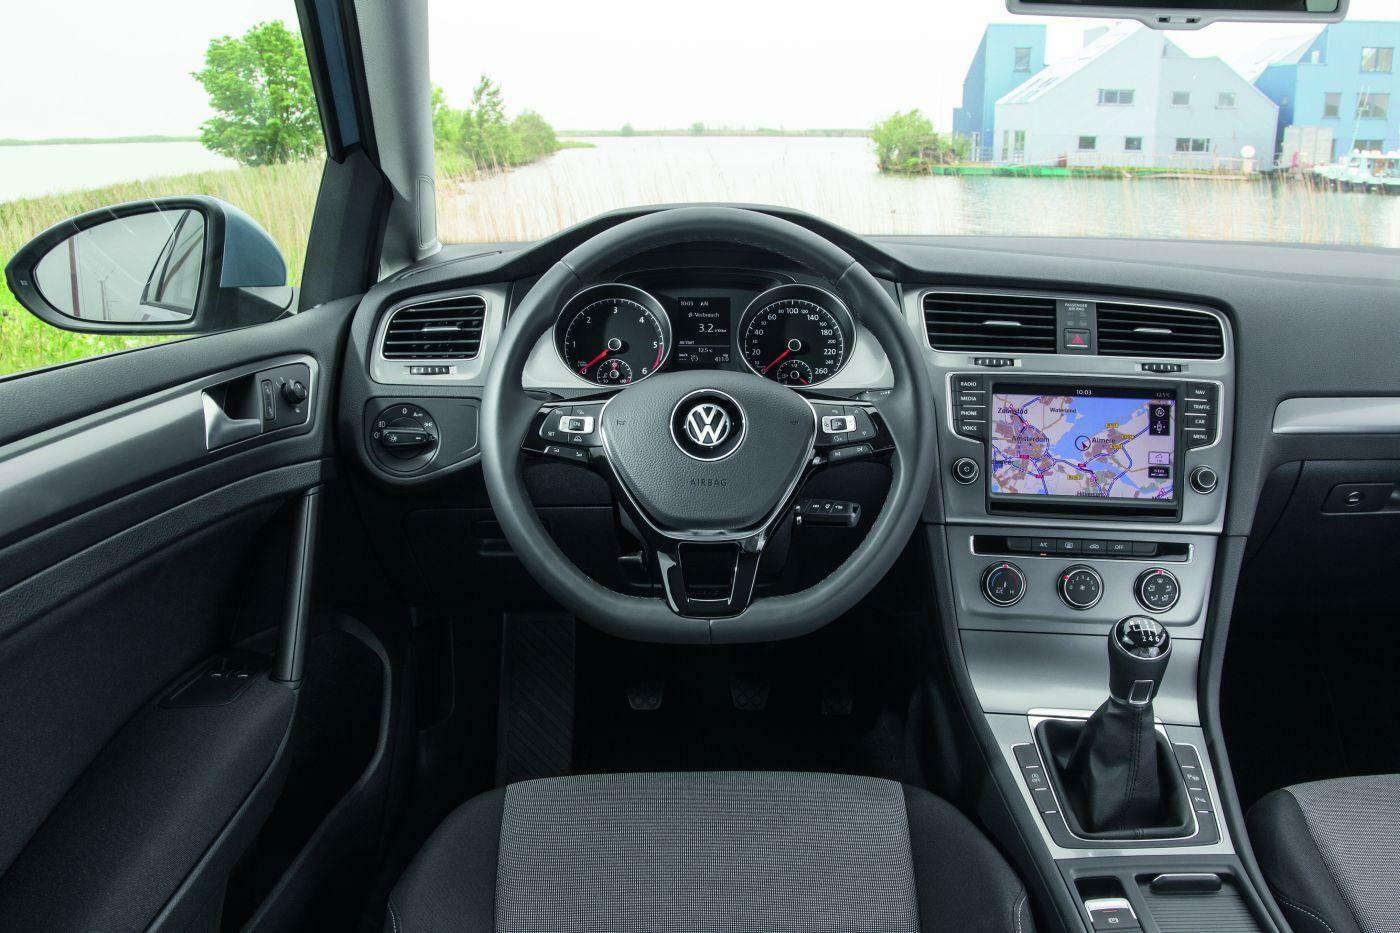 praxistest vw golf 1 2 tsi bmt im fahrbericht reichen. Black Bedroom Furniture Sets. Home Design Ideas